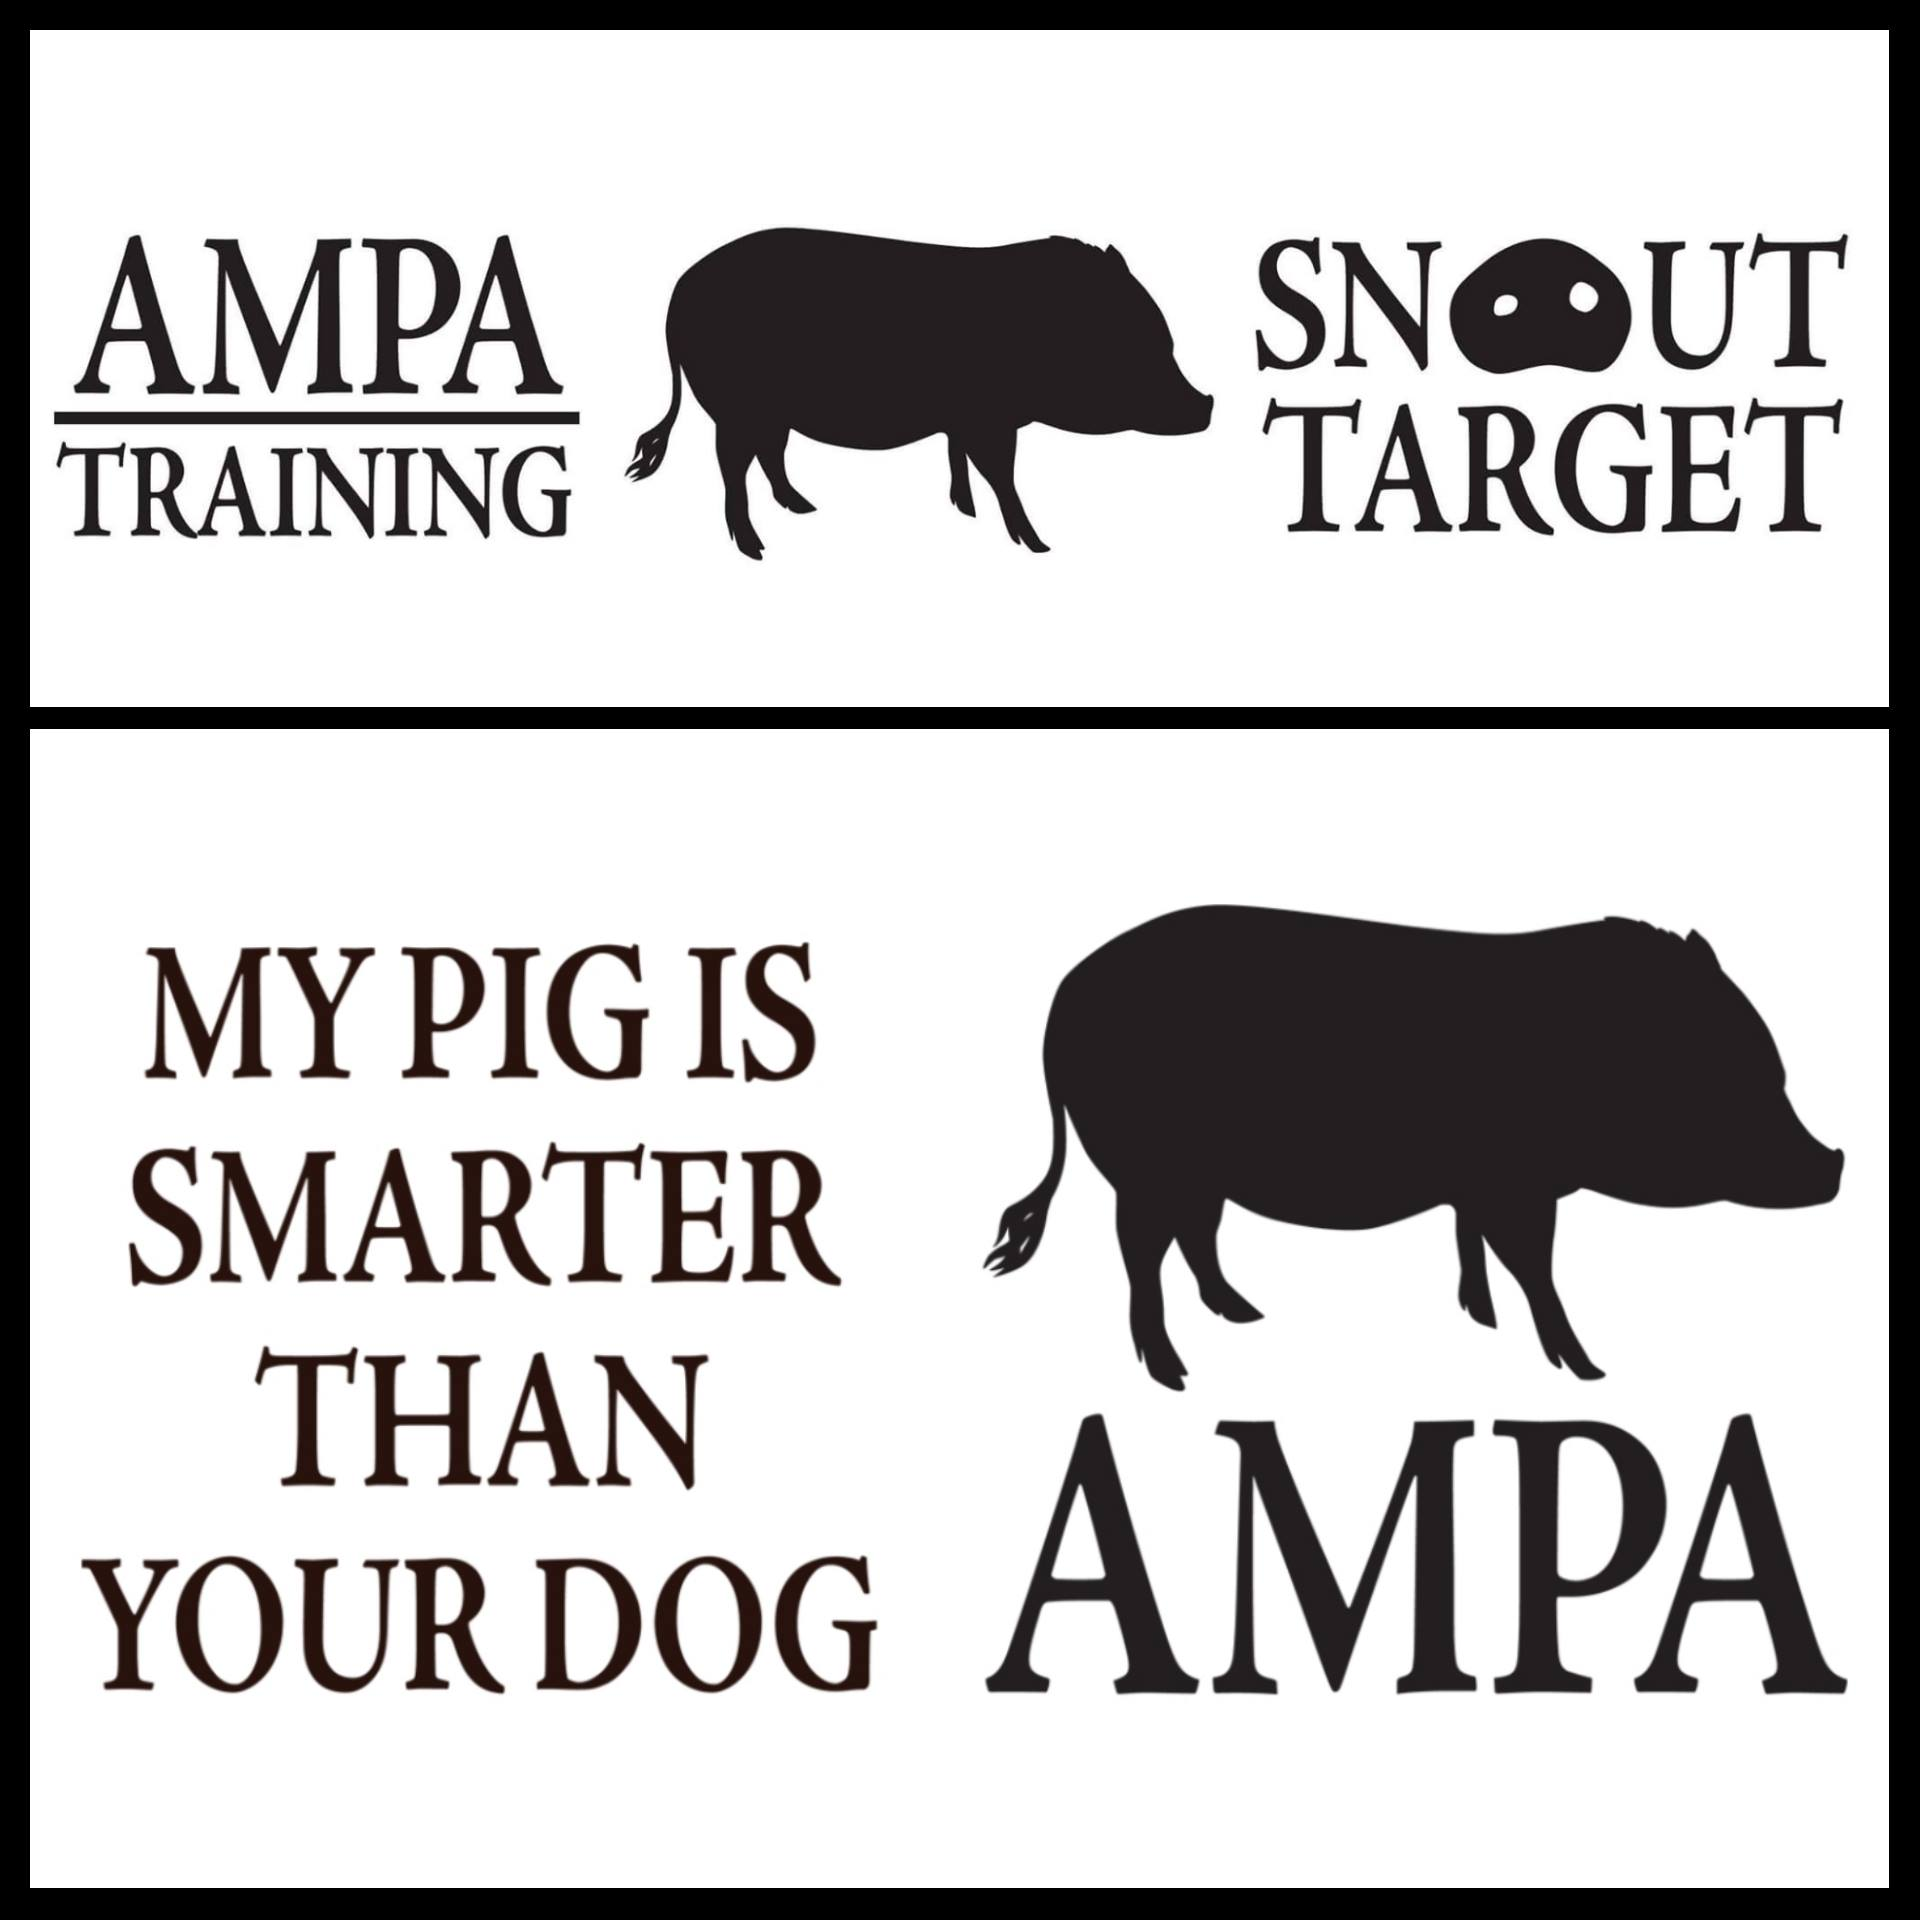 my pig is smarter than your dog